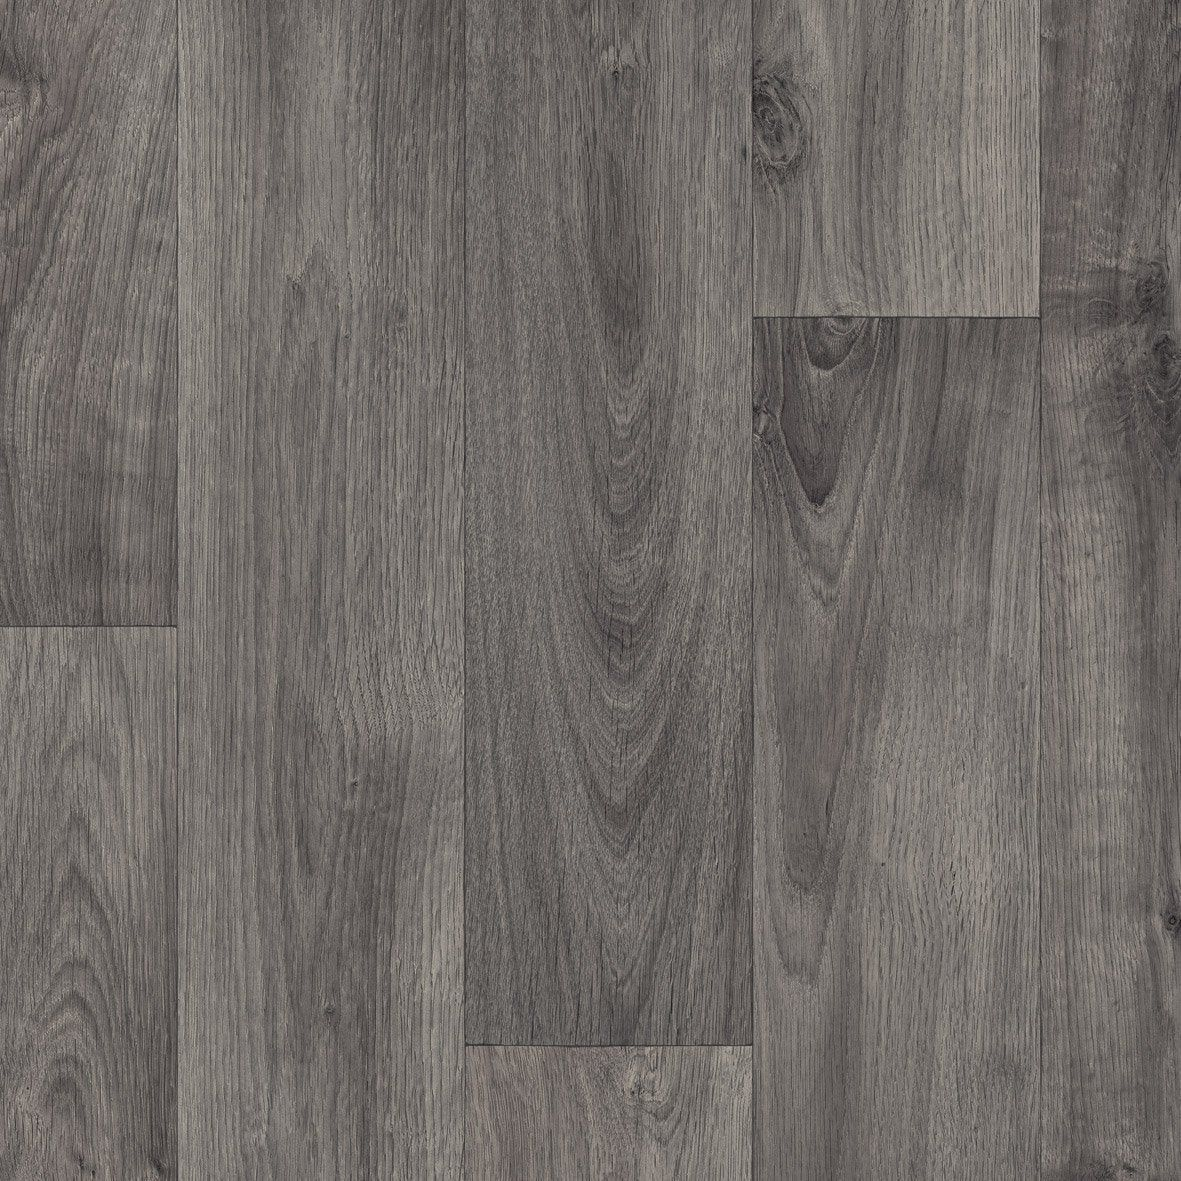 sol pvc forte tex parquet gris fonc ivc l 4 m products. Black Bedroom Furniture Sets. Home Design Ideas